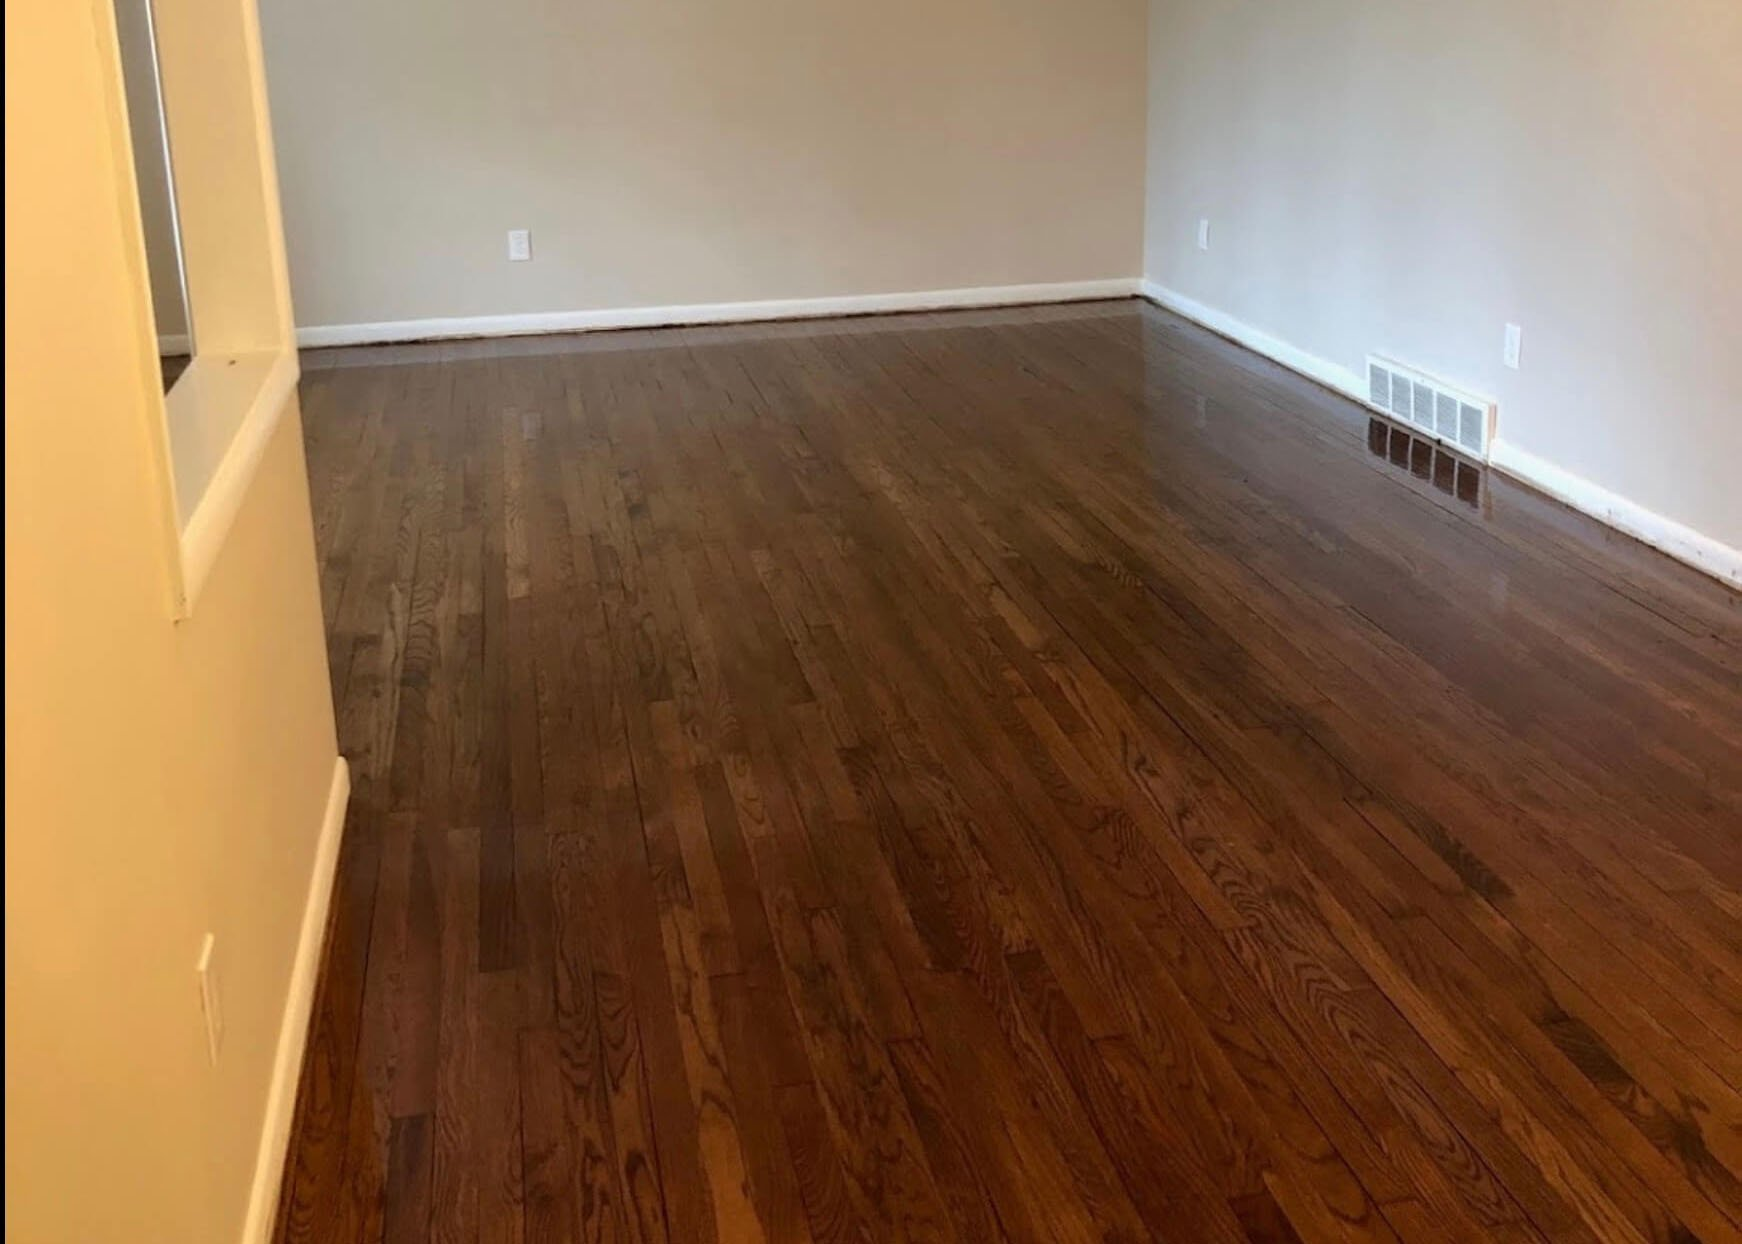 A perfectly refinished and restained hardwood floor